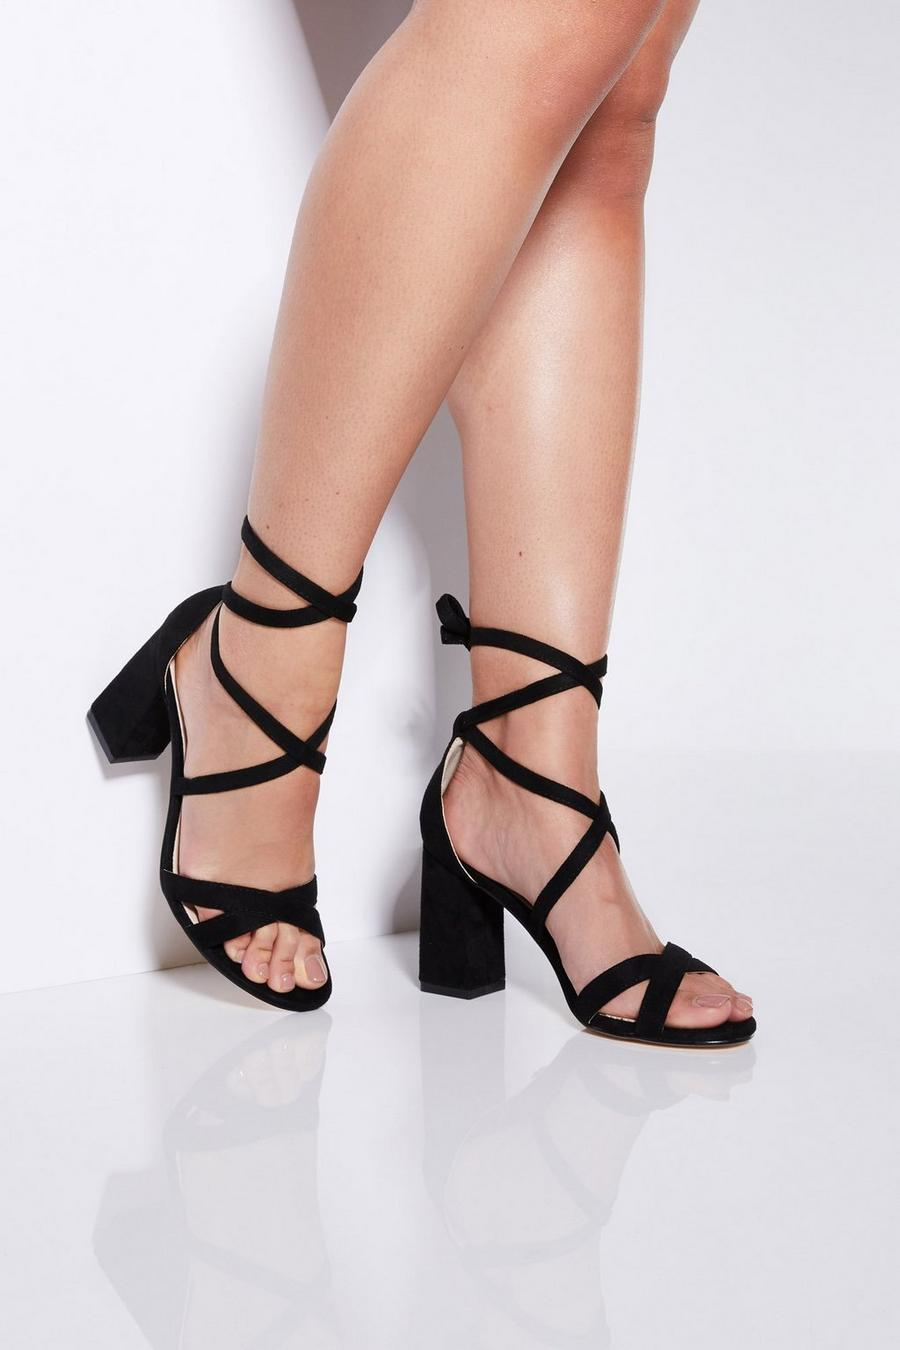 978f4555f80 Black Tie Up Block Heel Sandals